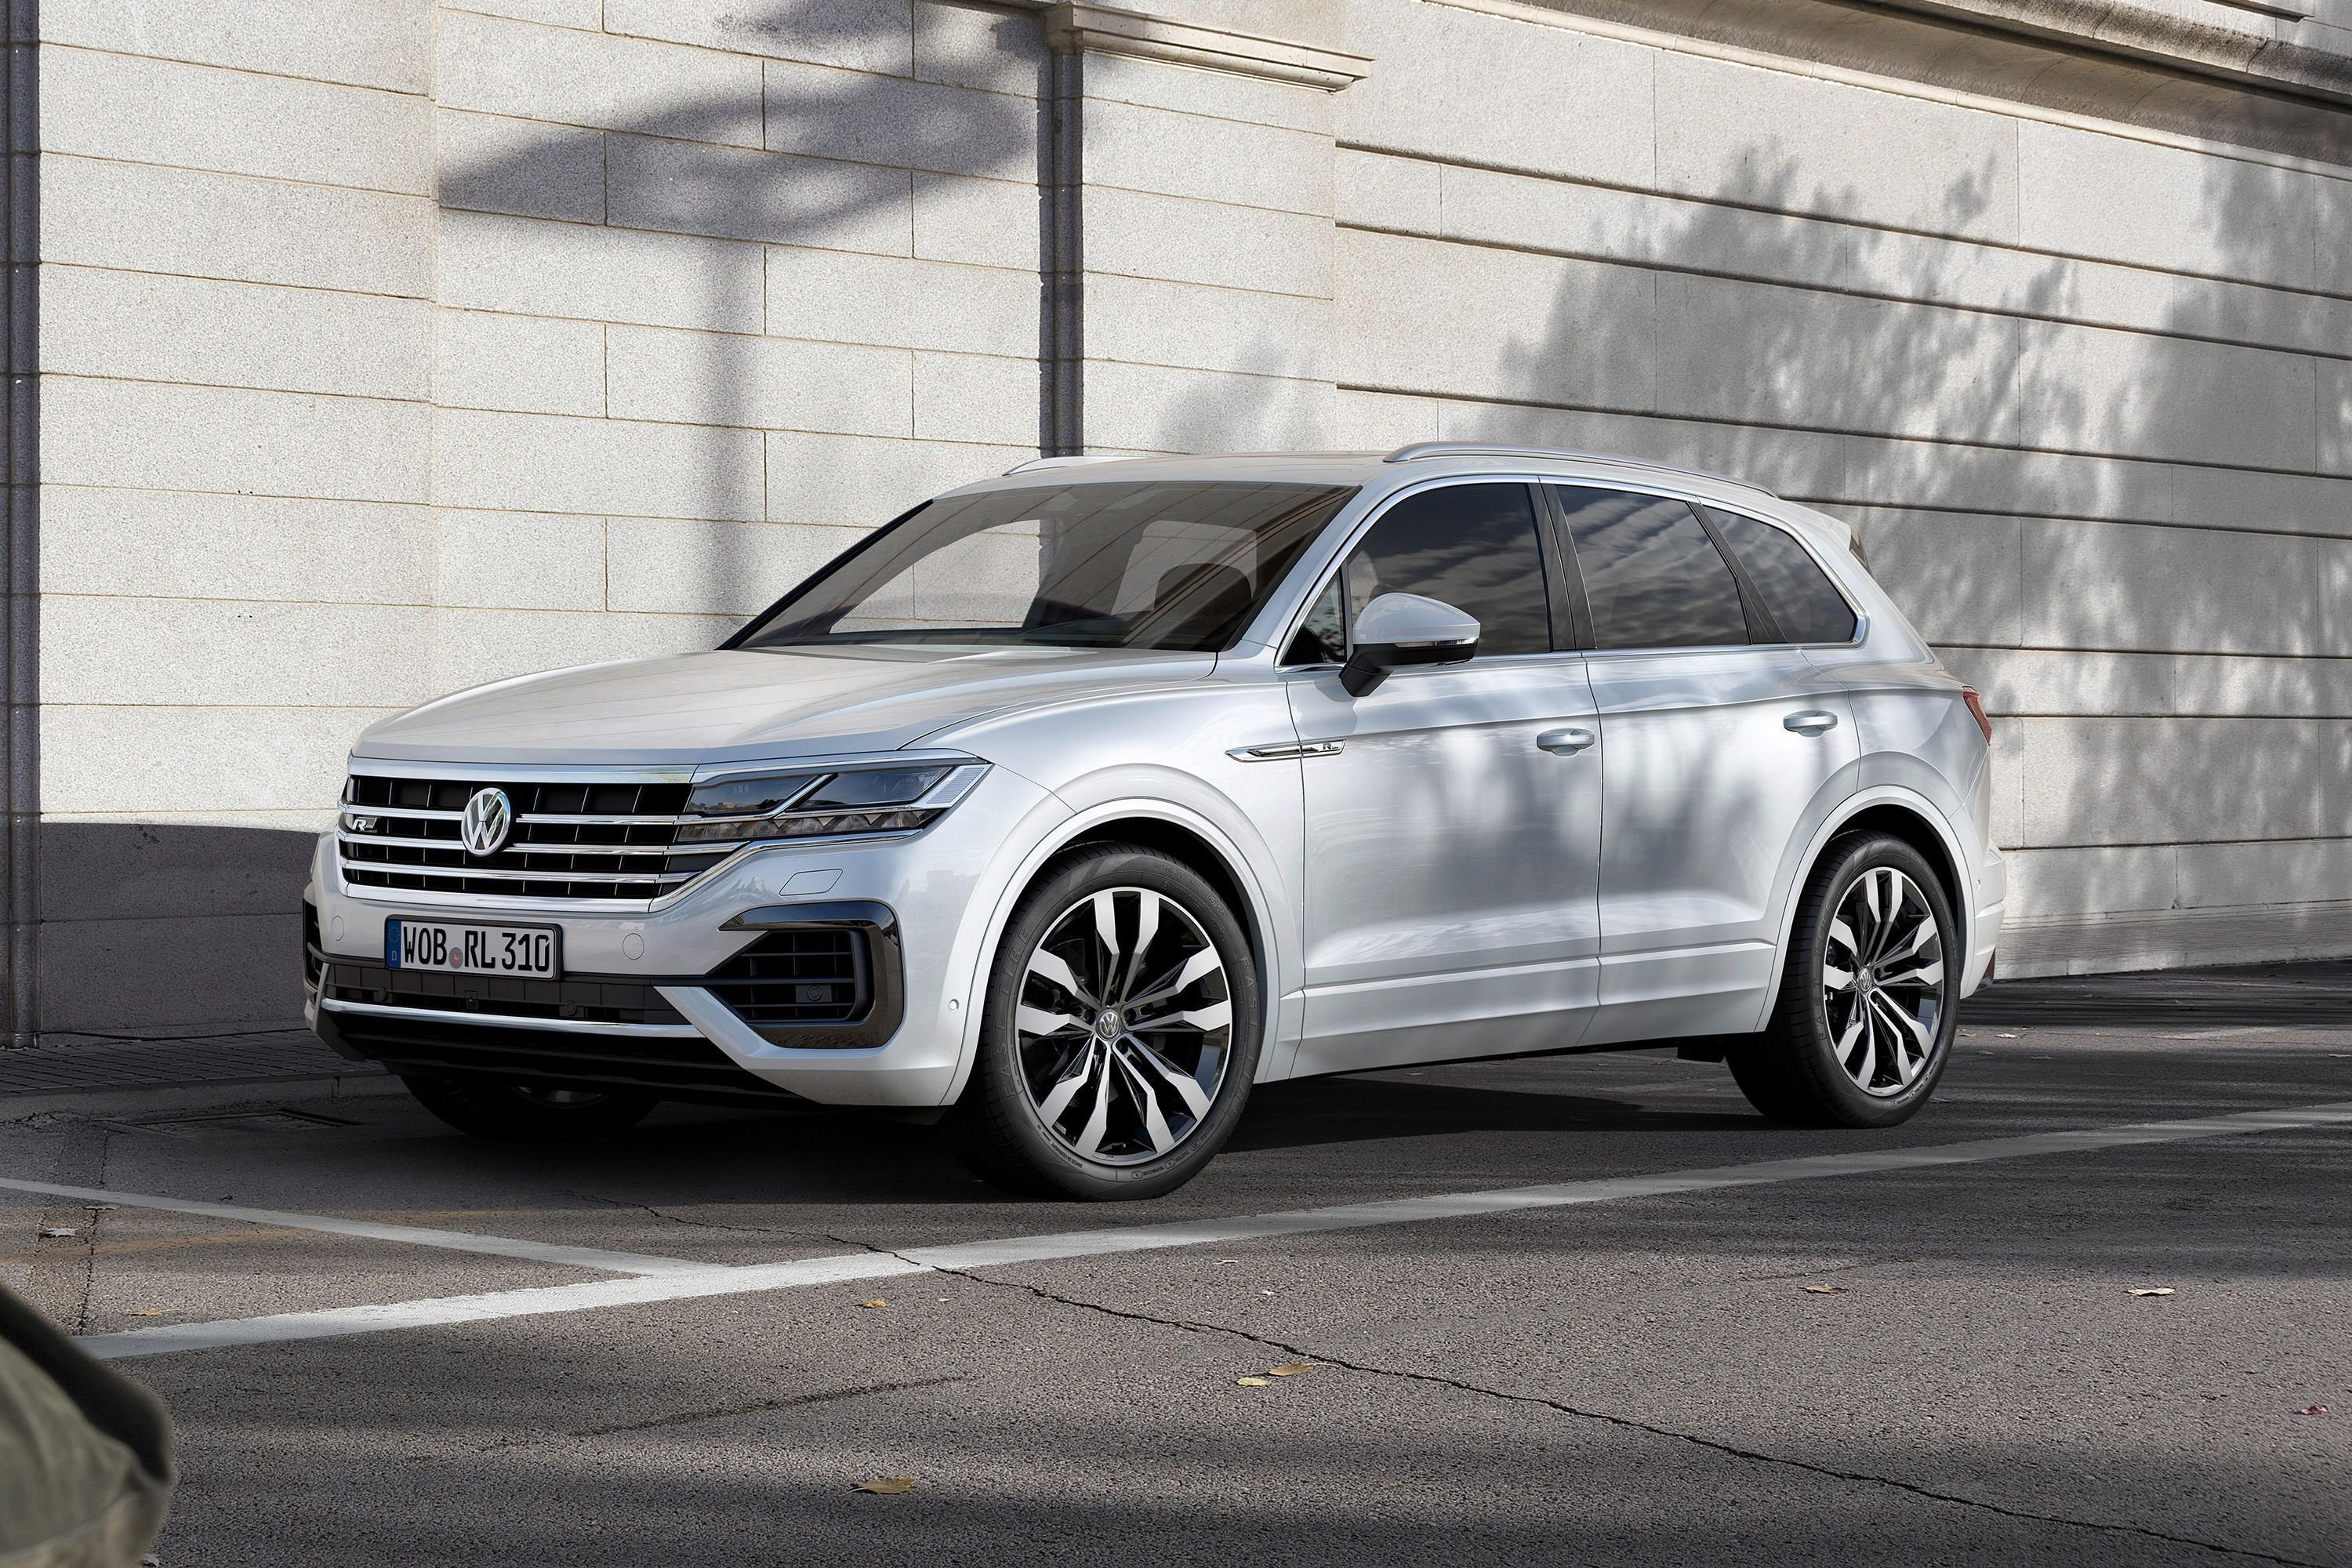 2019 Volkswagen Usa First Drive Price Performance And Review Volkswagen Touareg Volkswagen Suv